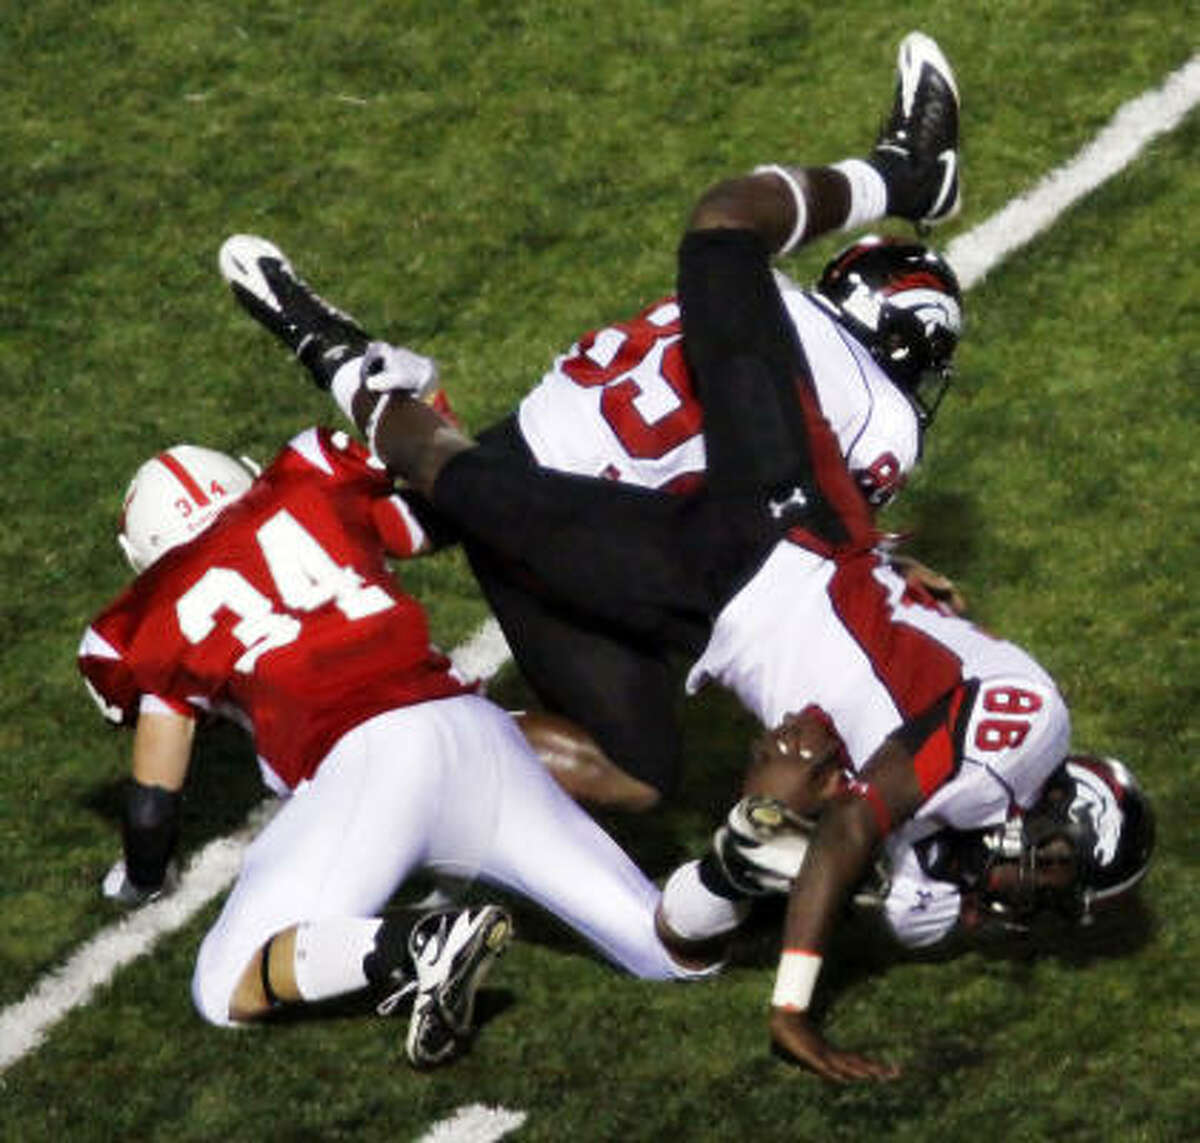 Westfield tight end Katrae Ford (86) is tackled on a kickoff return.